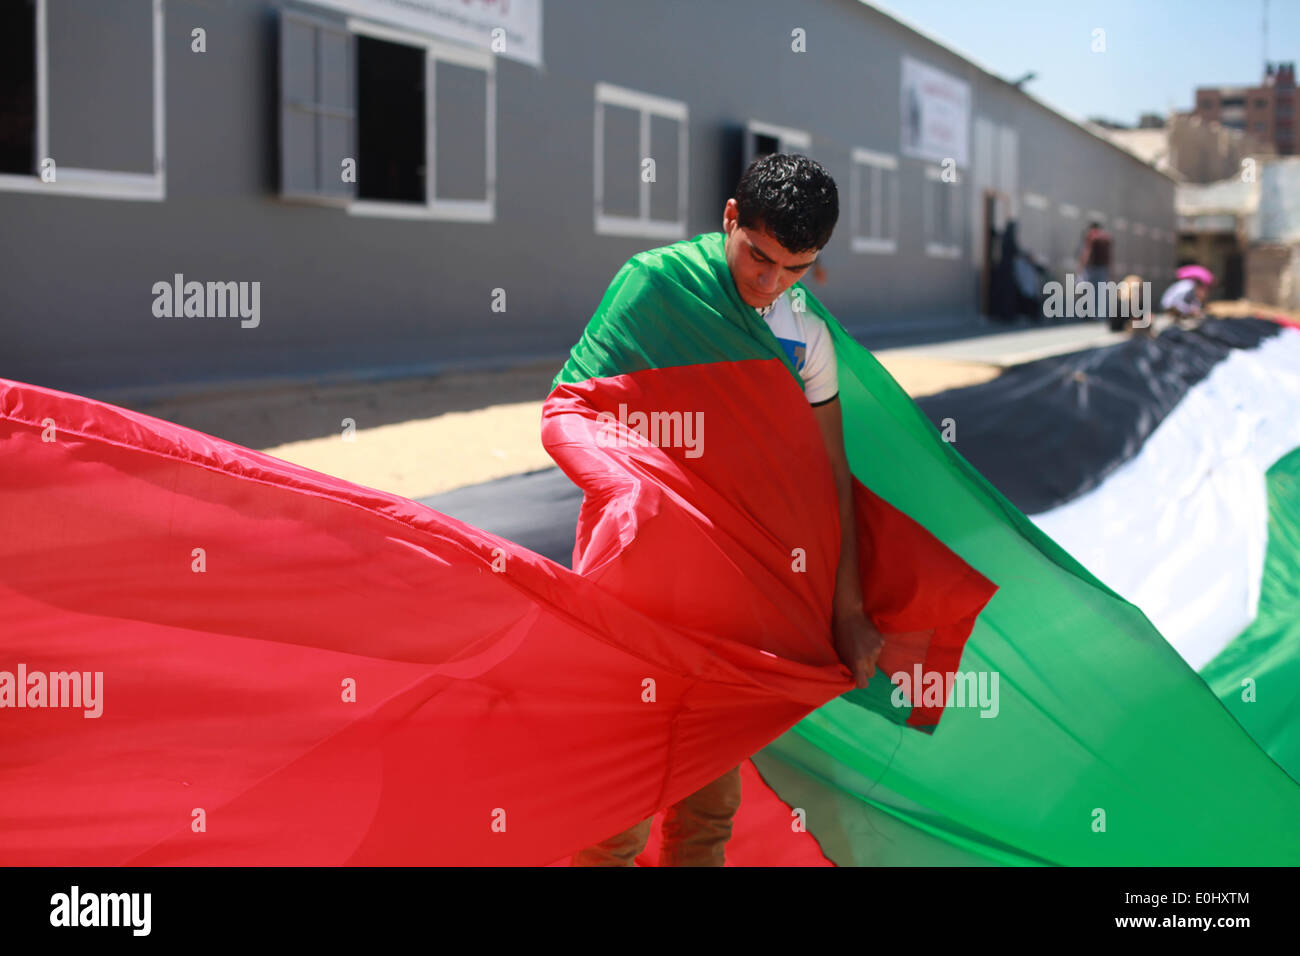 Gaza, Palestinian Territories. 14th May, 2014. Palestinians hold a large Palestinian flag during a rally ahead of Stock Photo